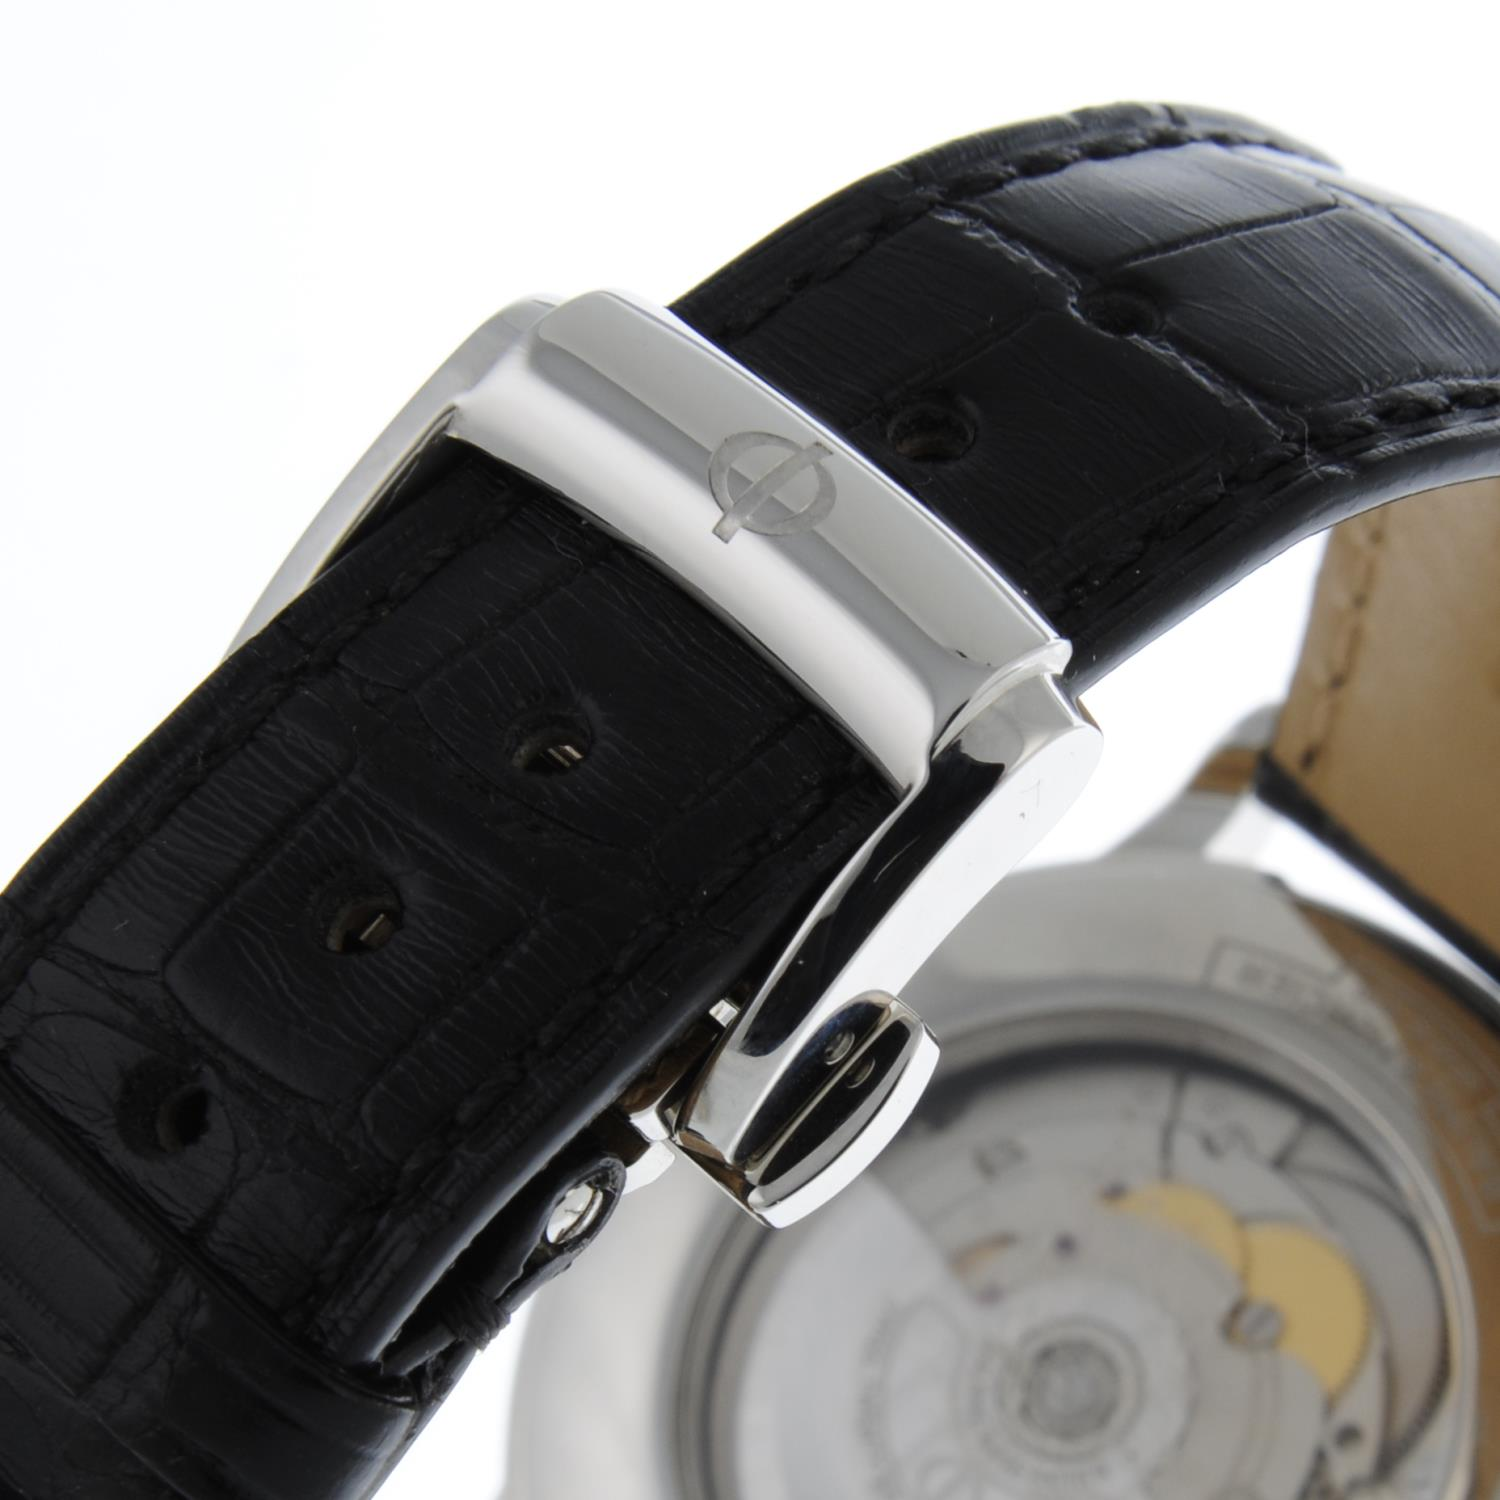 BAUME & MERCIER - a stainless steel Classima wrist watch. - Image 2 of 6